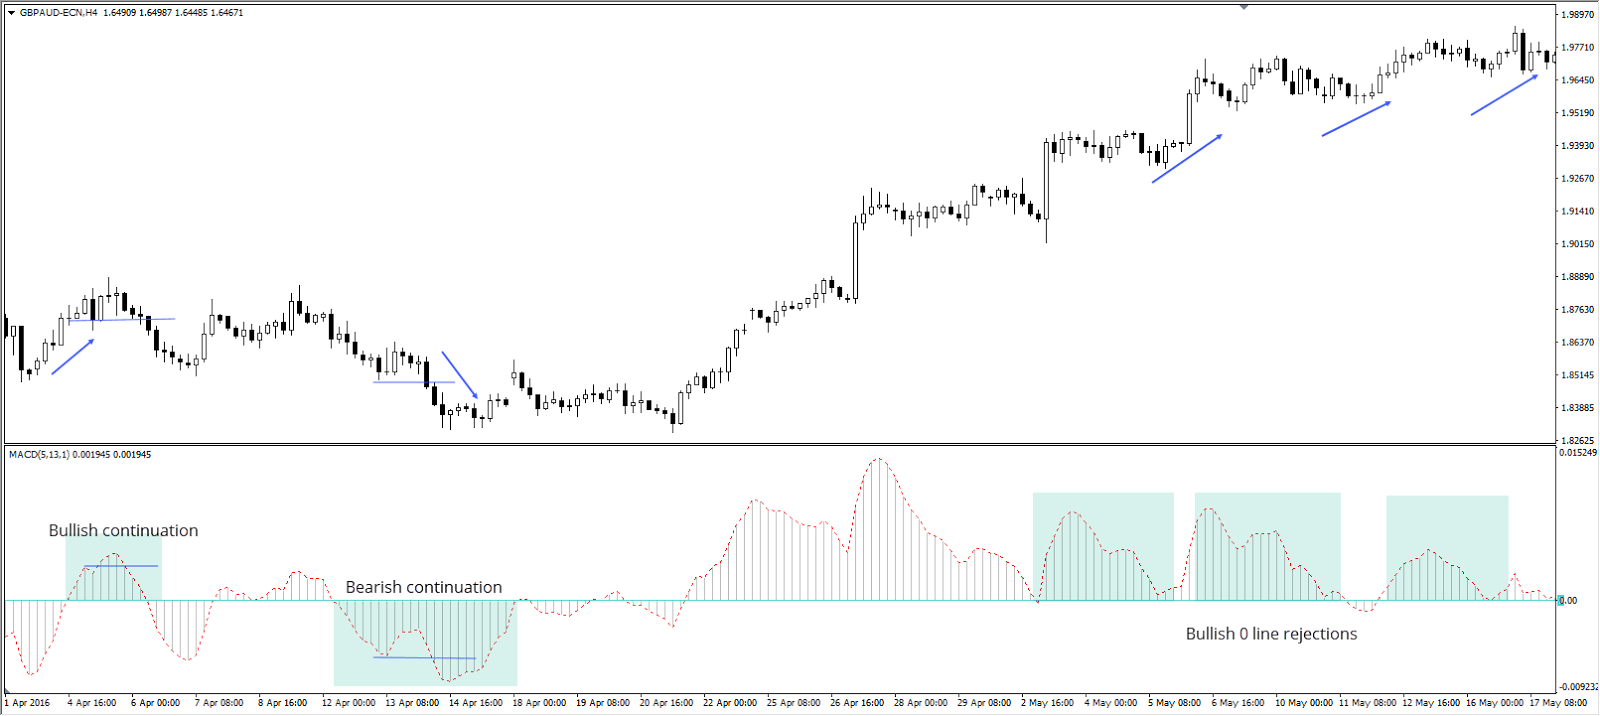 moving average convergence/divergence formacje